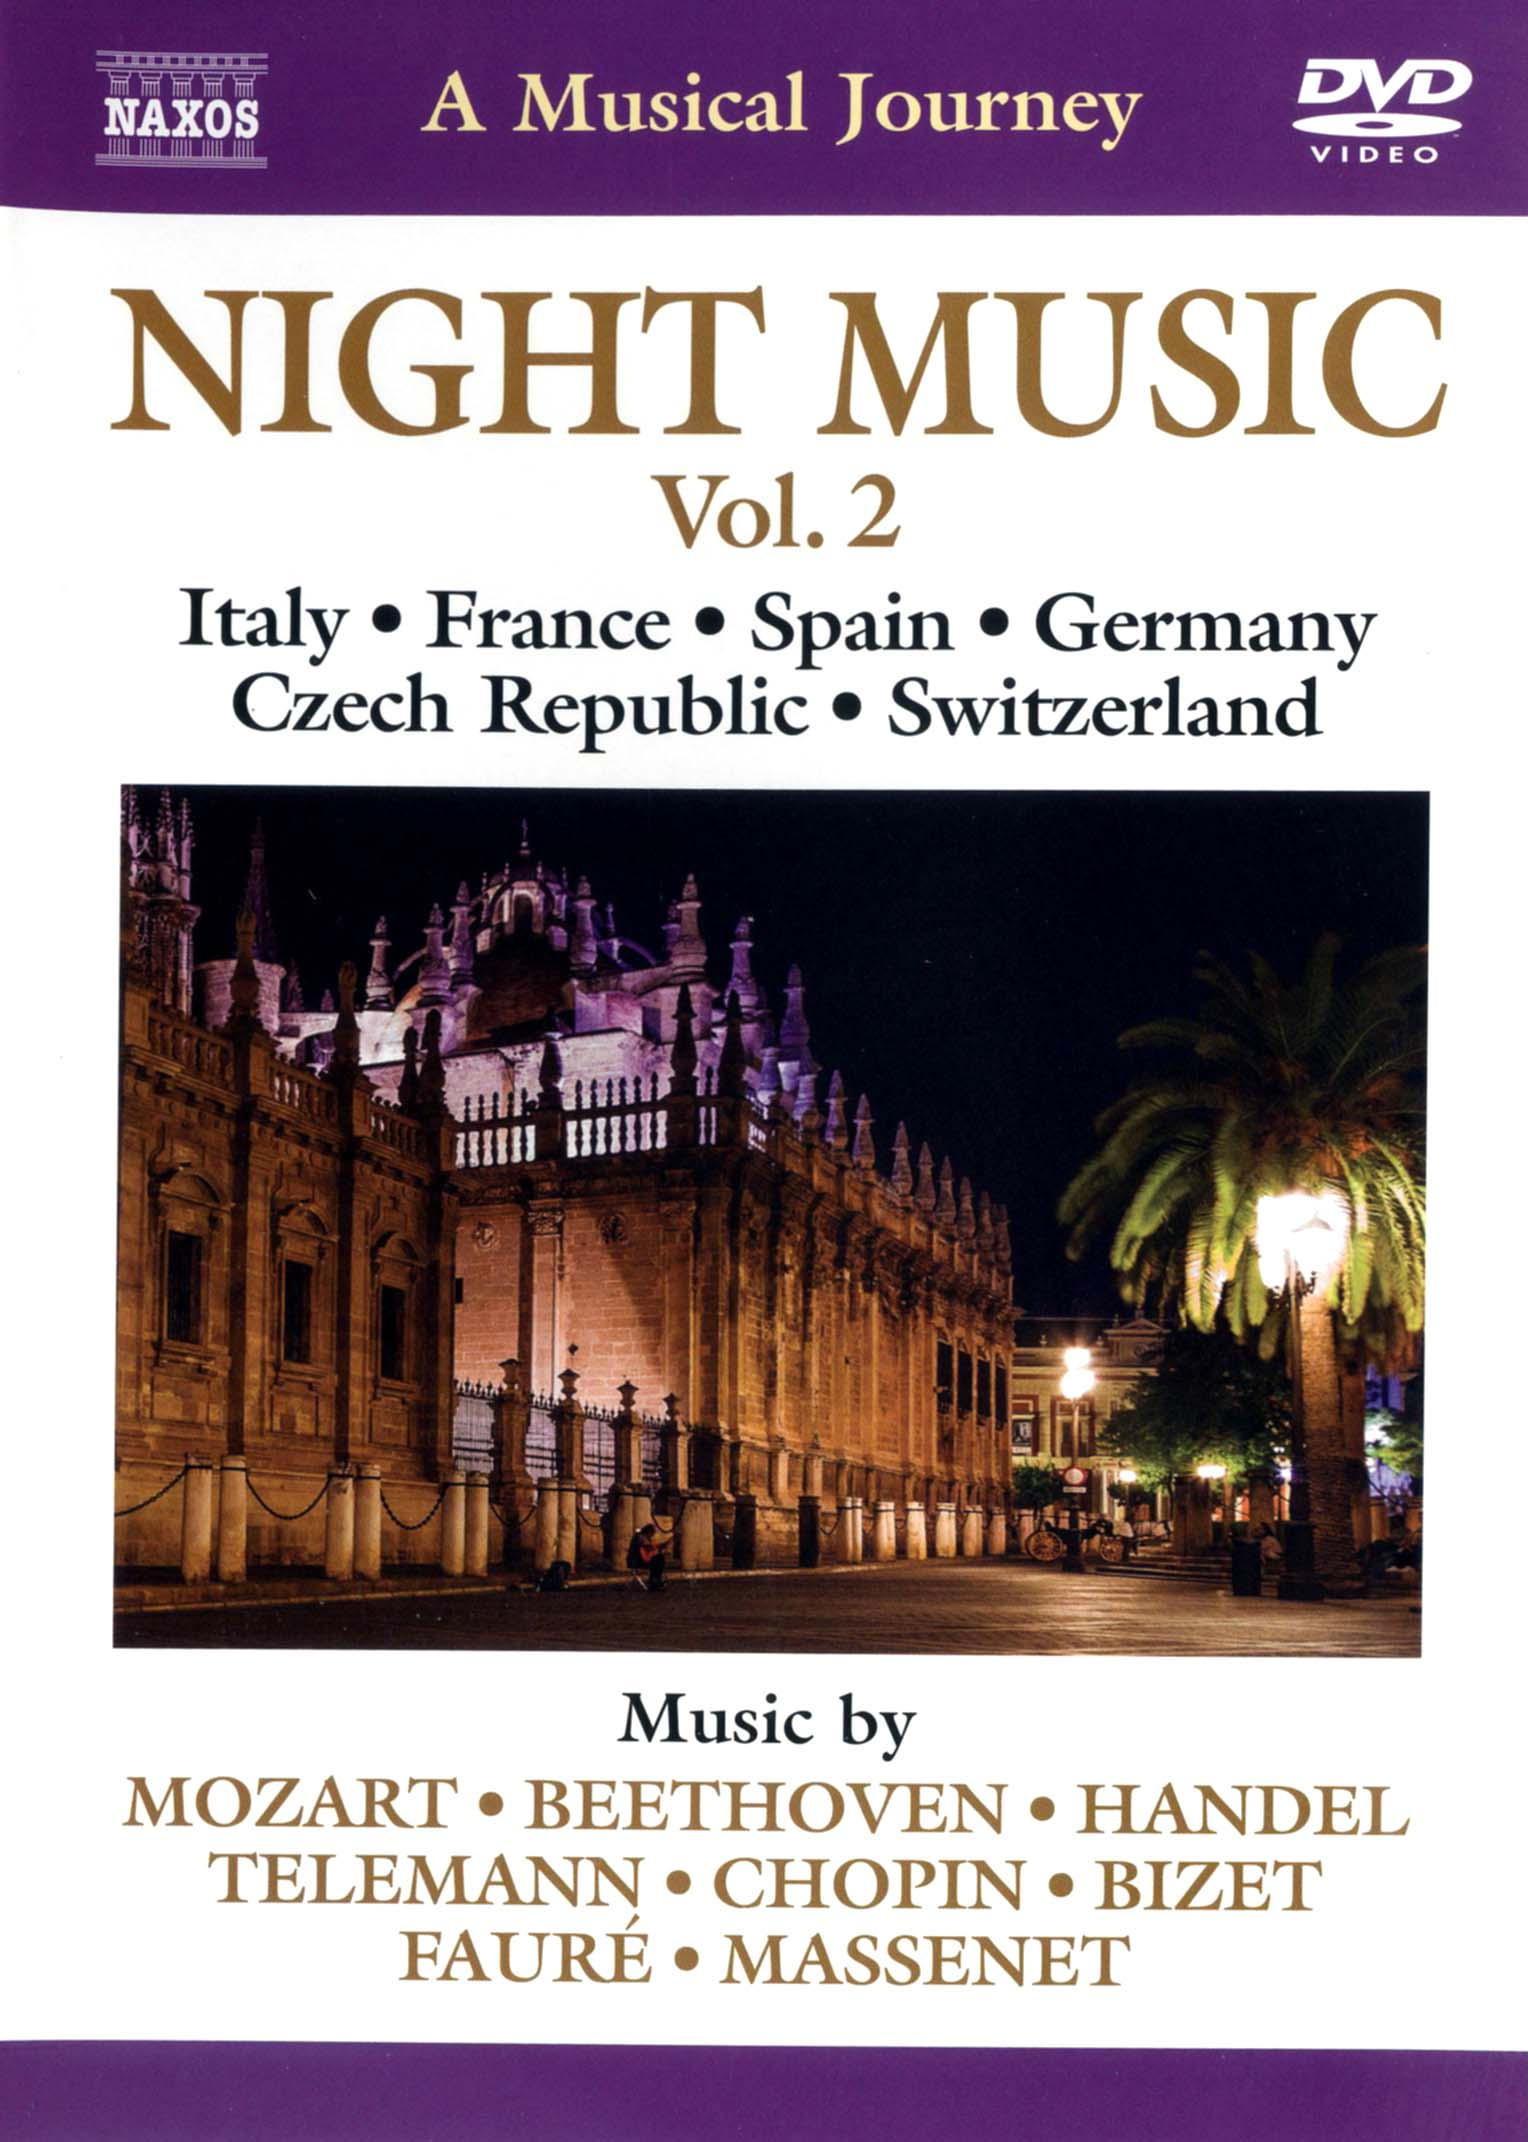 A Musical Journey: Night Music, Vol. 2 - Italy/France/Spain/Germany/Czech Republic/Switzerland